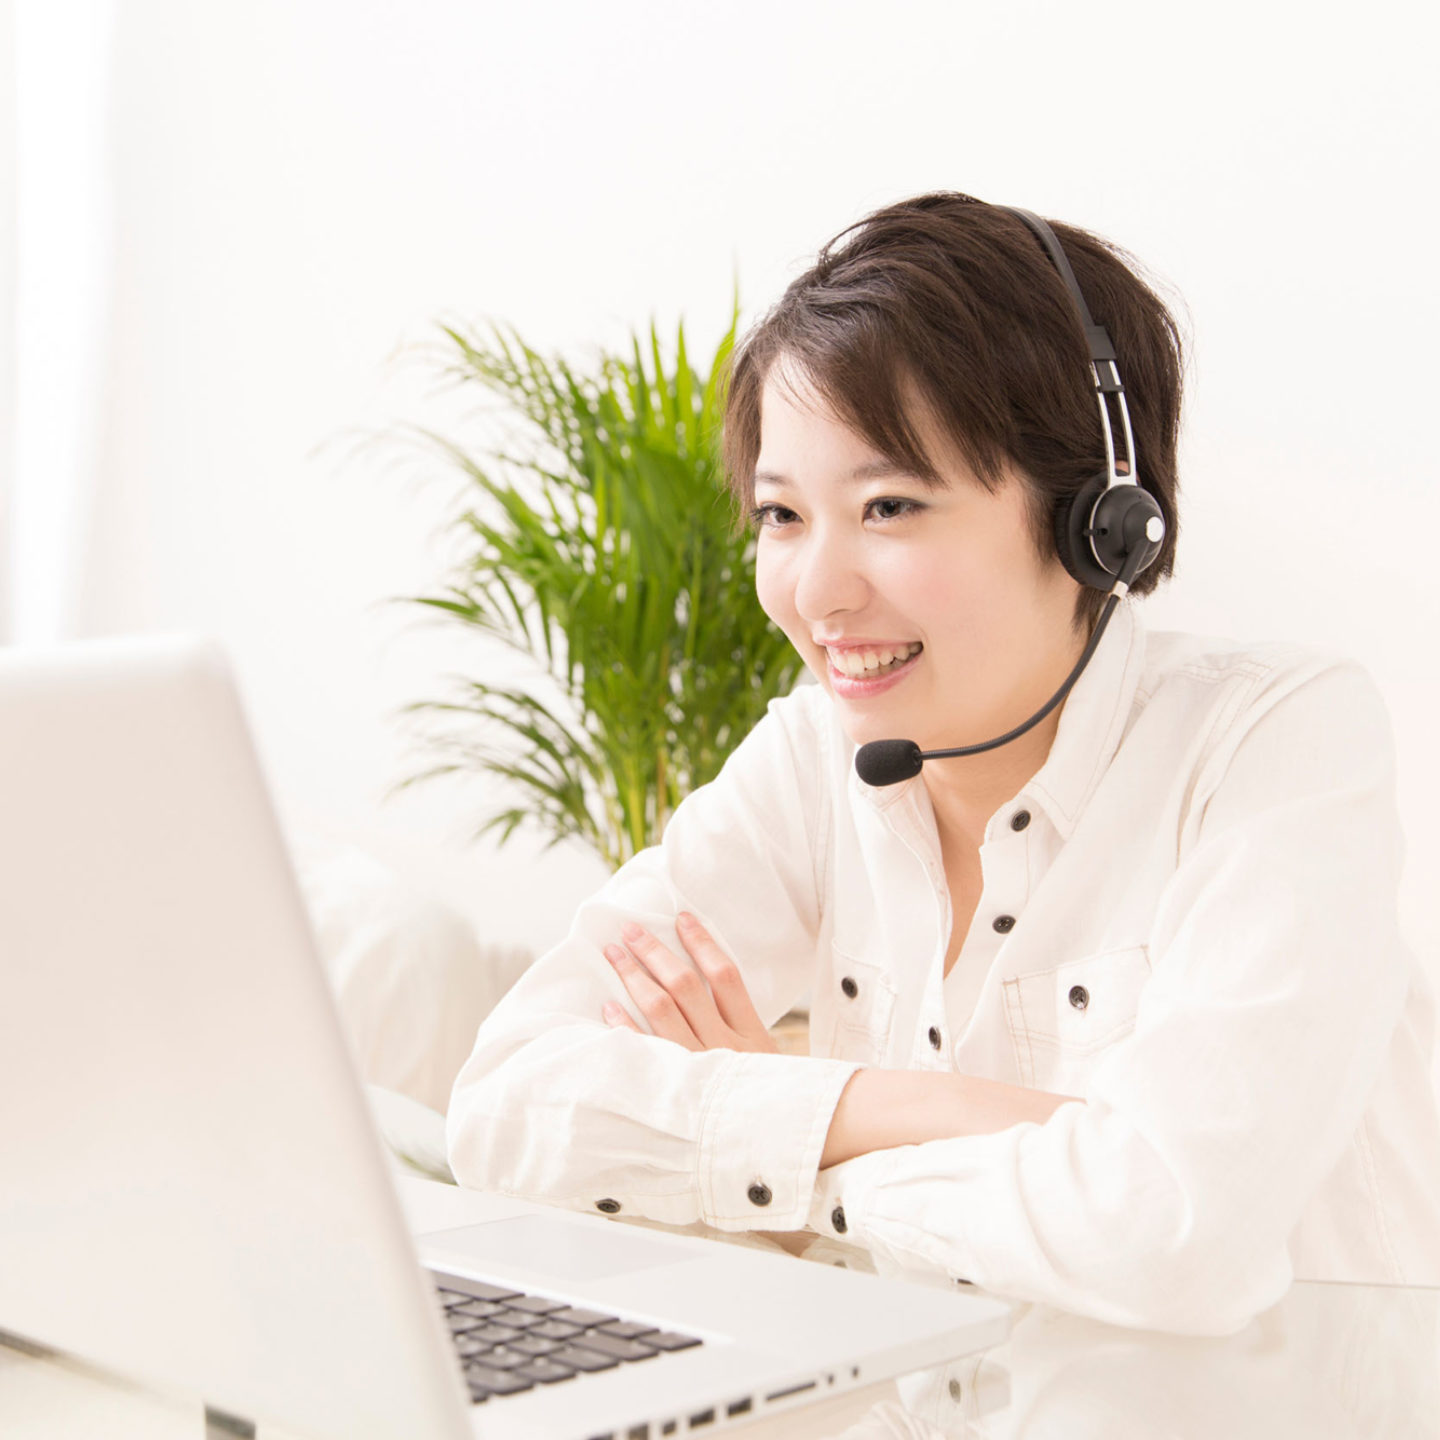 Woman on headset smiling at laptop